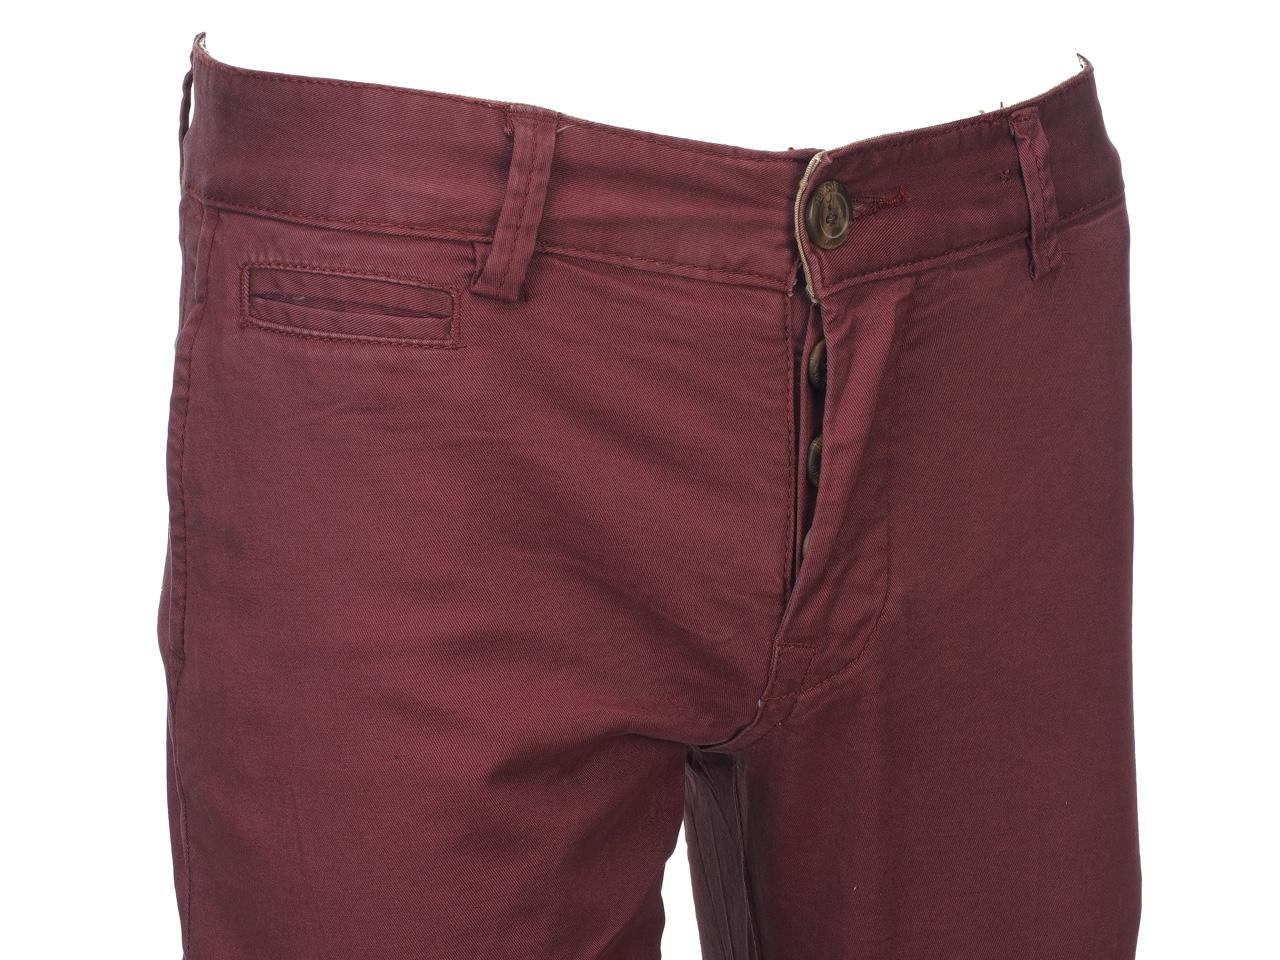 Pantalon-Crossby-Chino-bordeaux-pant-Rouge-44066-Neuf miniature 3